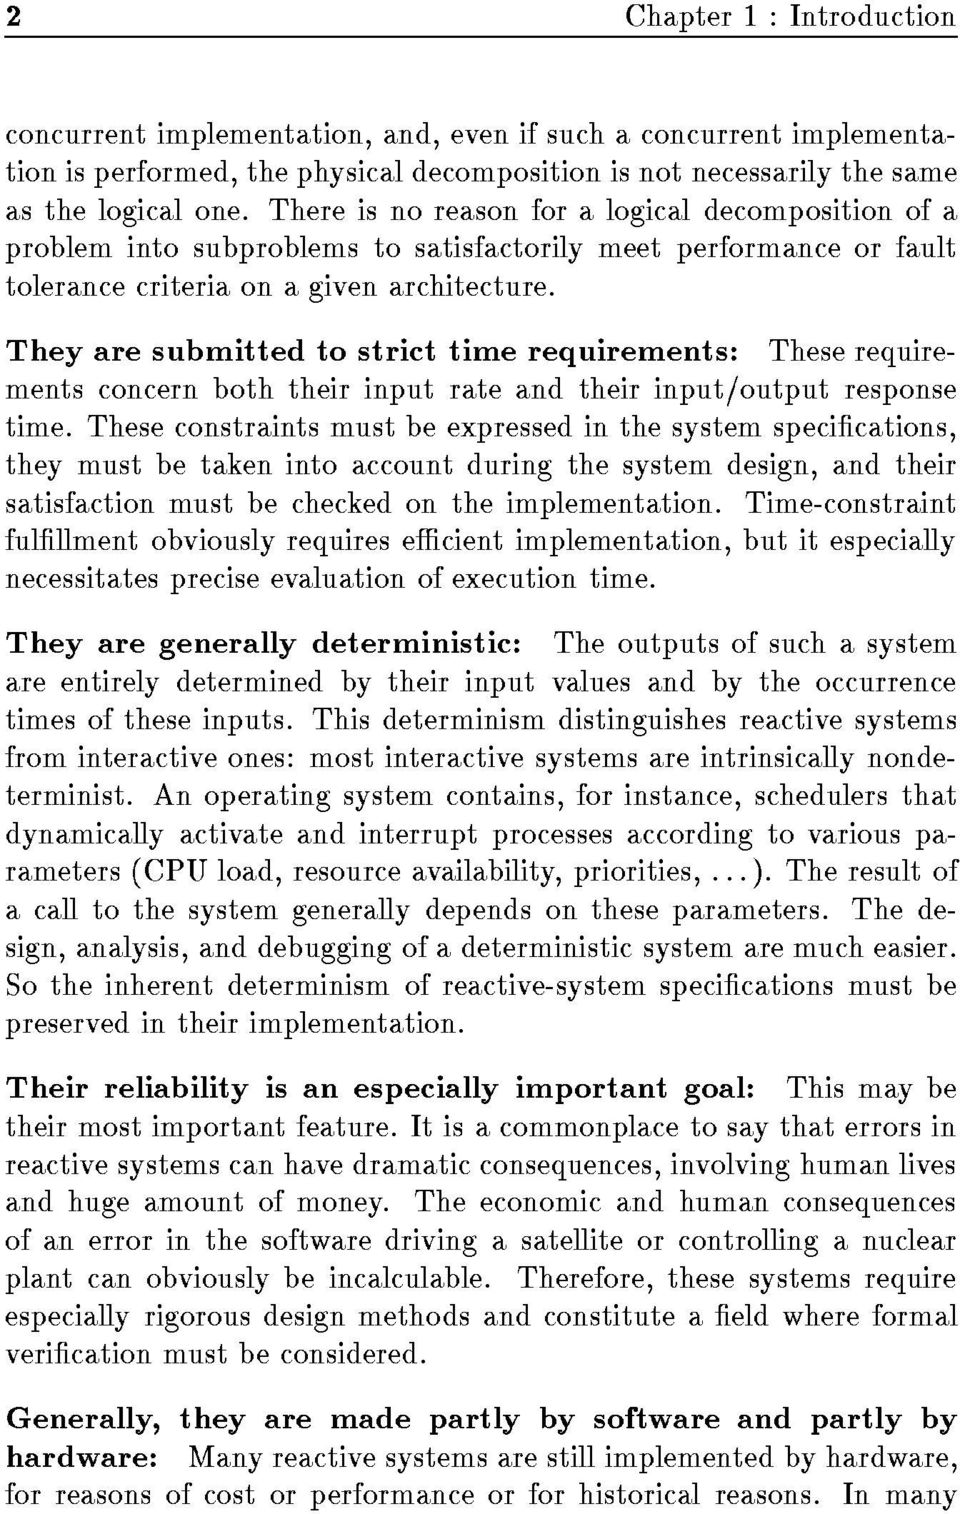 Theyaresubmittedtostricttimerequirements:Theserequirementsconcernboththeirinputrateandtheirinput/outputresponse time.